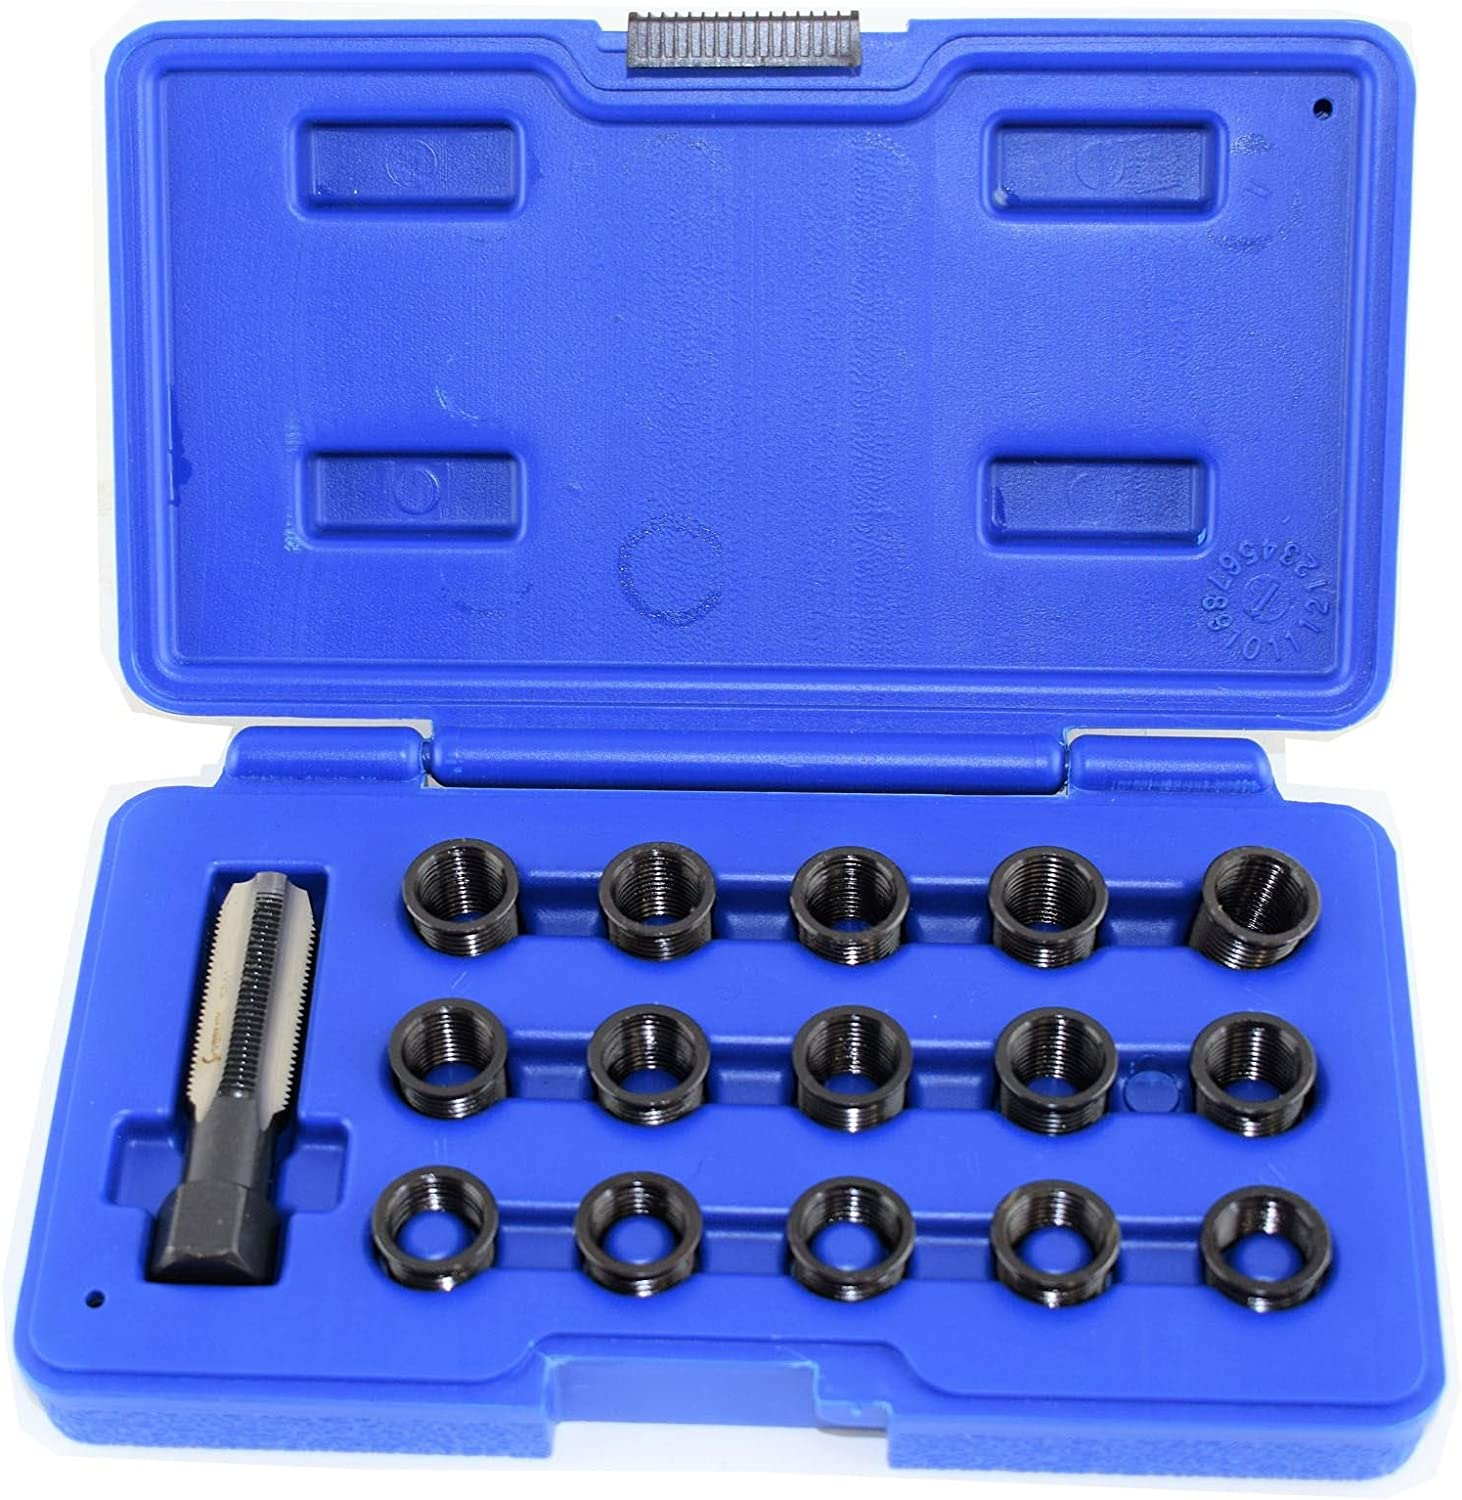 Cloud Rising 16pc Spark Plug Thread Repair Kit for 14mm x 1.25 M16 Rethreading Kit with Carry Case